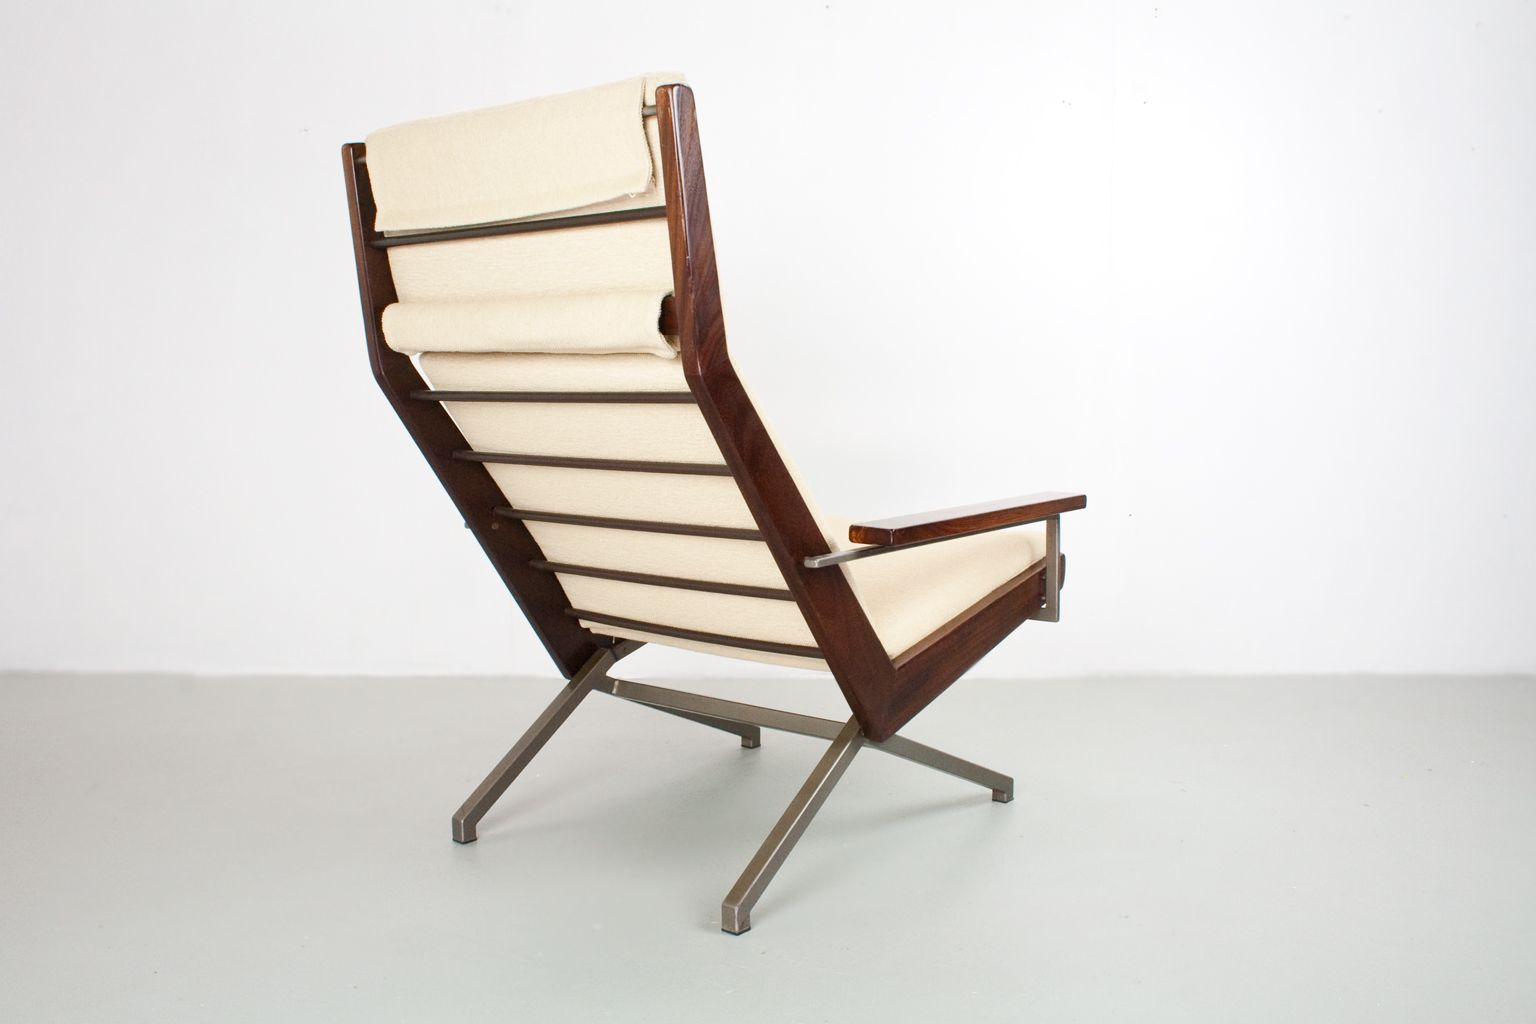 Large lotus lounge chair by rob parry for de ster for Dutch design chair uk